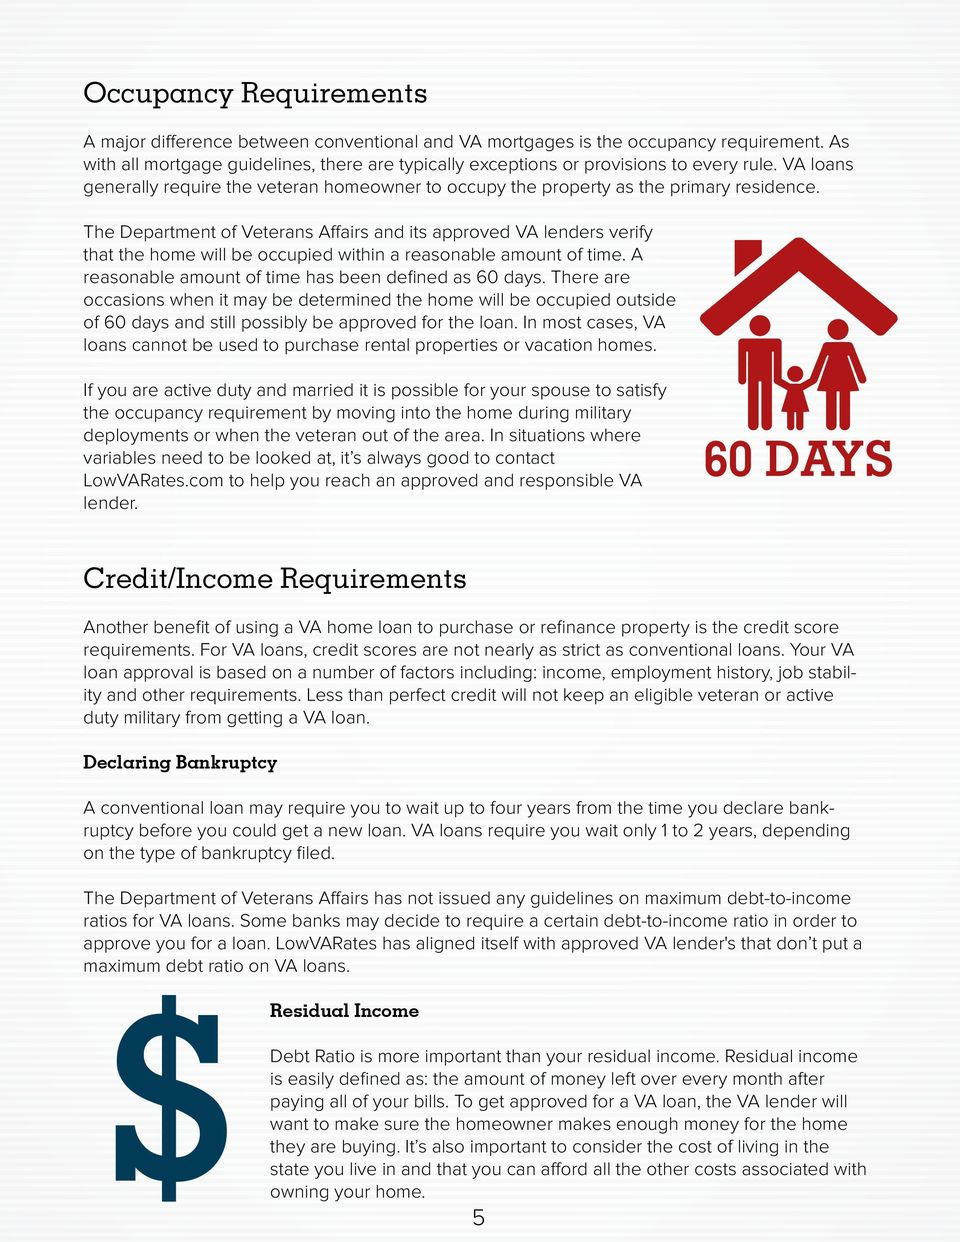 The Department of Veterans Affairs and its approved VA lenders verify that the home will be occupied within a reasonable amount of time. A reasonable amount of time has been defined as 60 days.